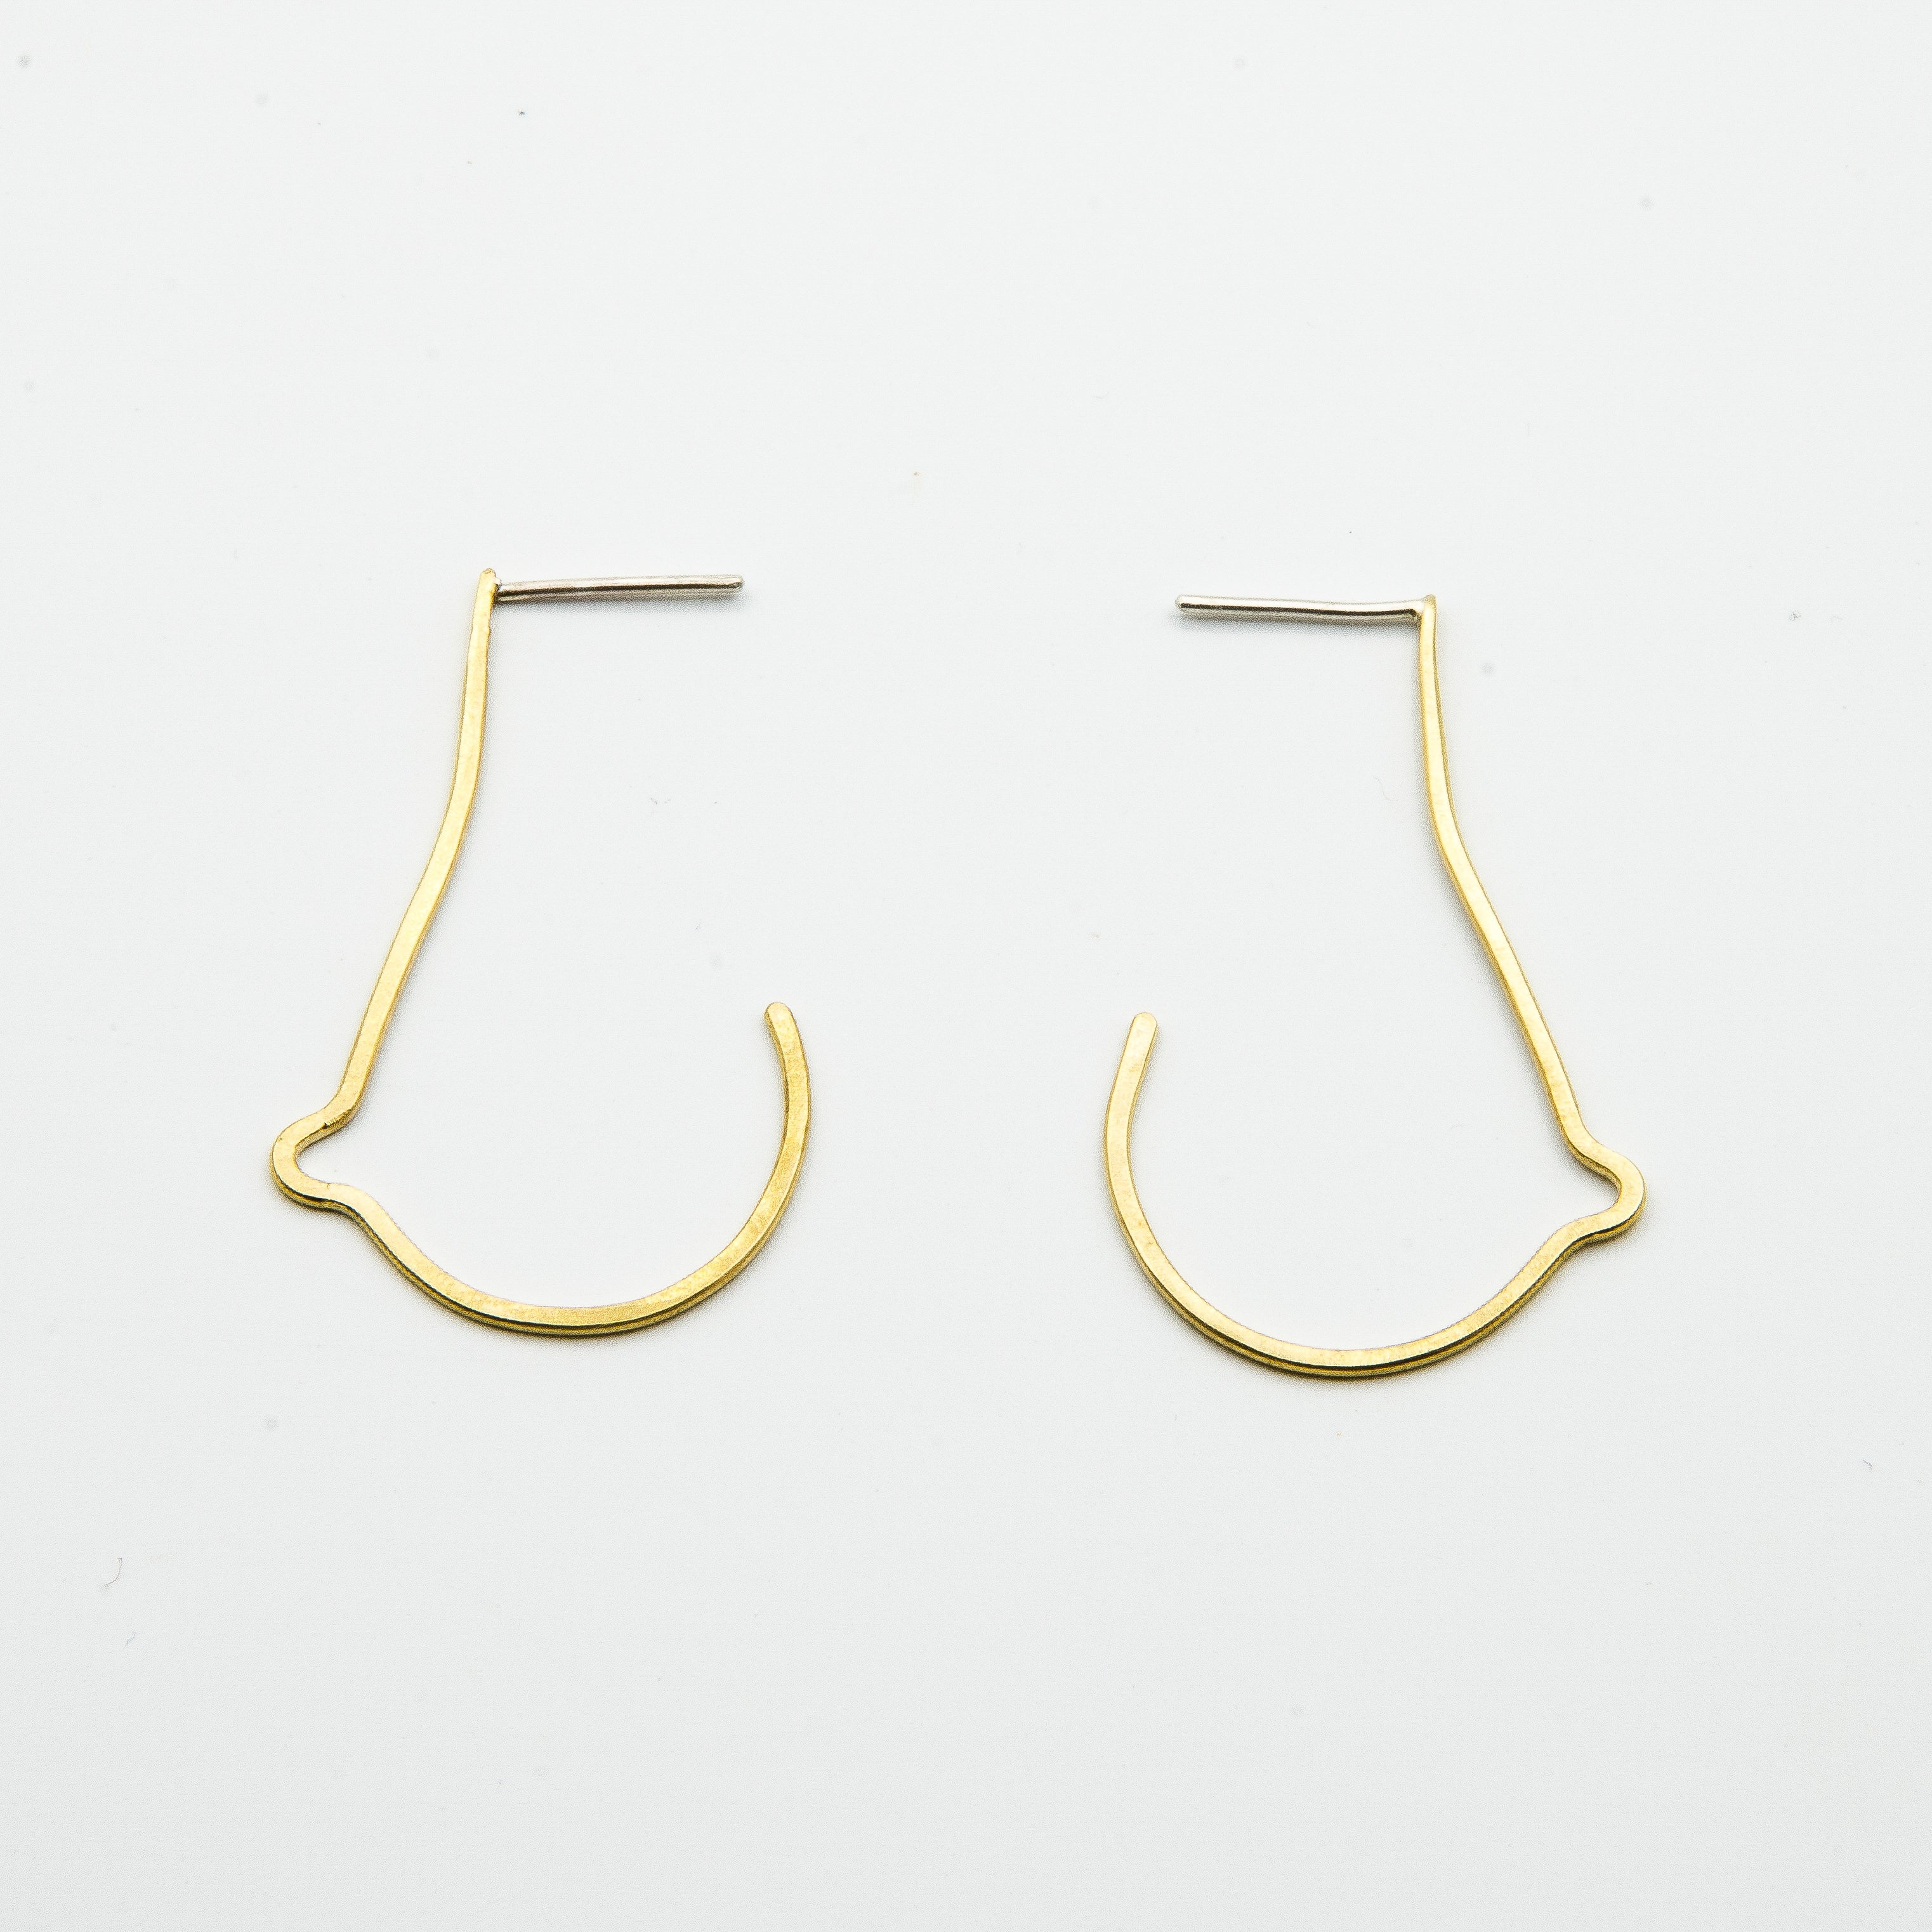 breast shaped brass wire earrings on white background